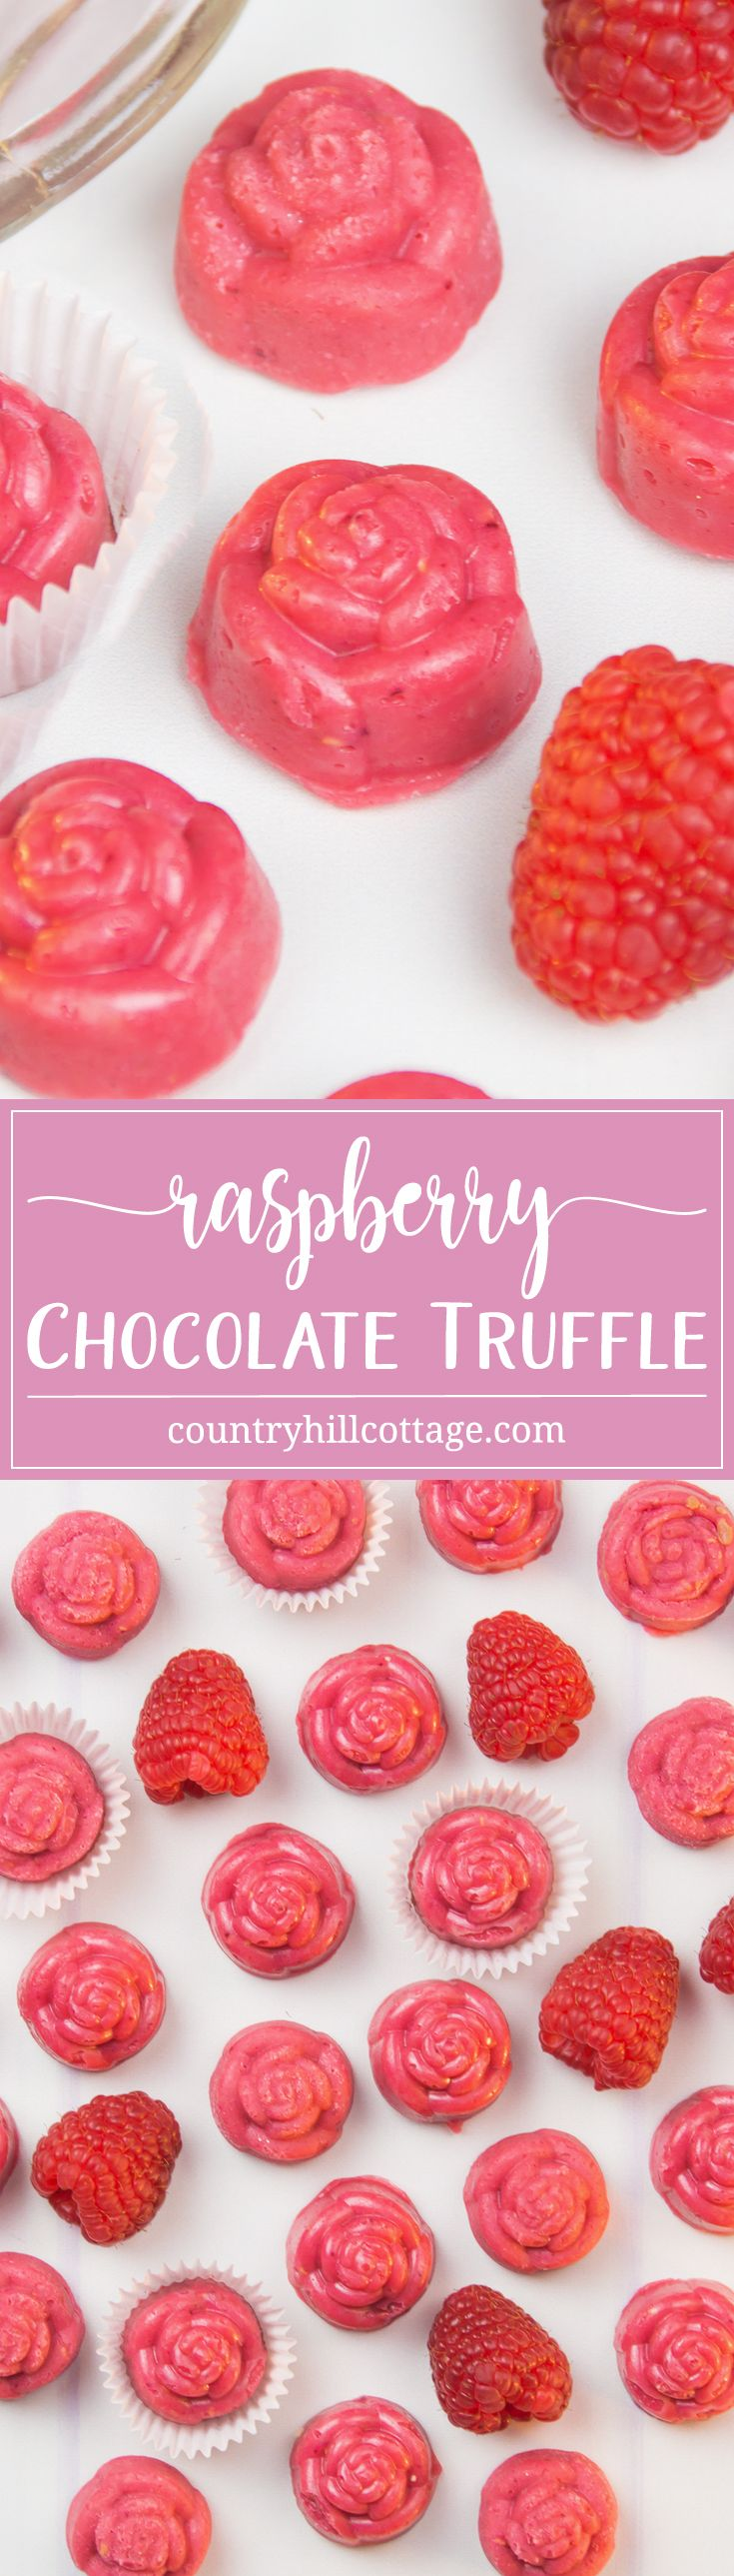 These homemade raspberry chocolate truffles are packed with flavour and look pretty as DIY food gift! Get the recipe for these sweets and 3 more quick and easy chocolate truffle recipes at our blog. #truffle #chocolate #foodgift   countryhillcottage.com